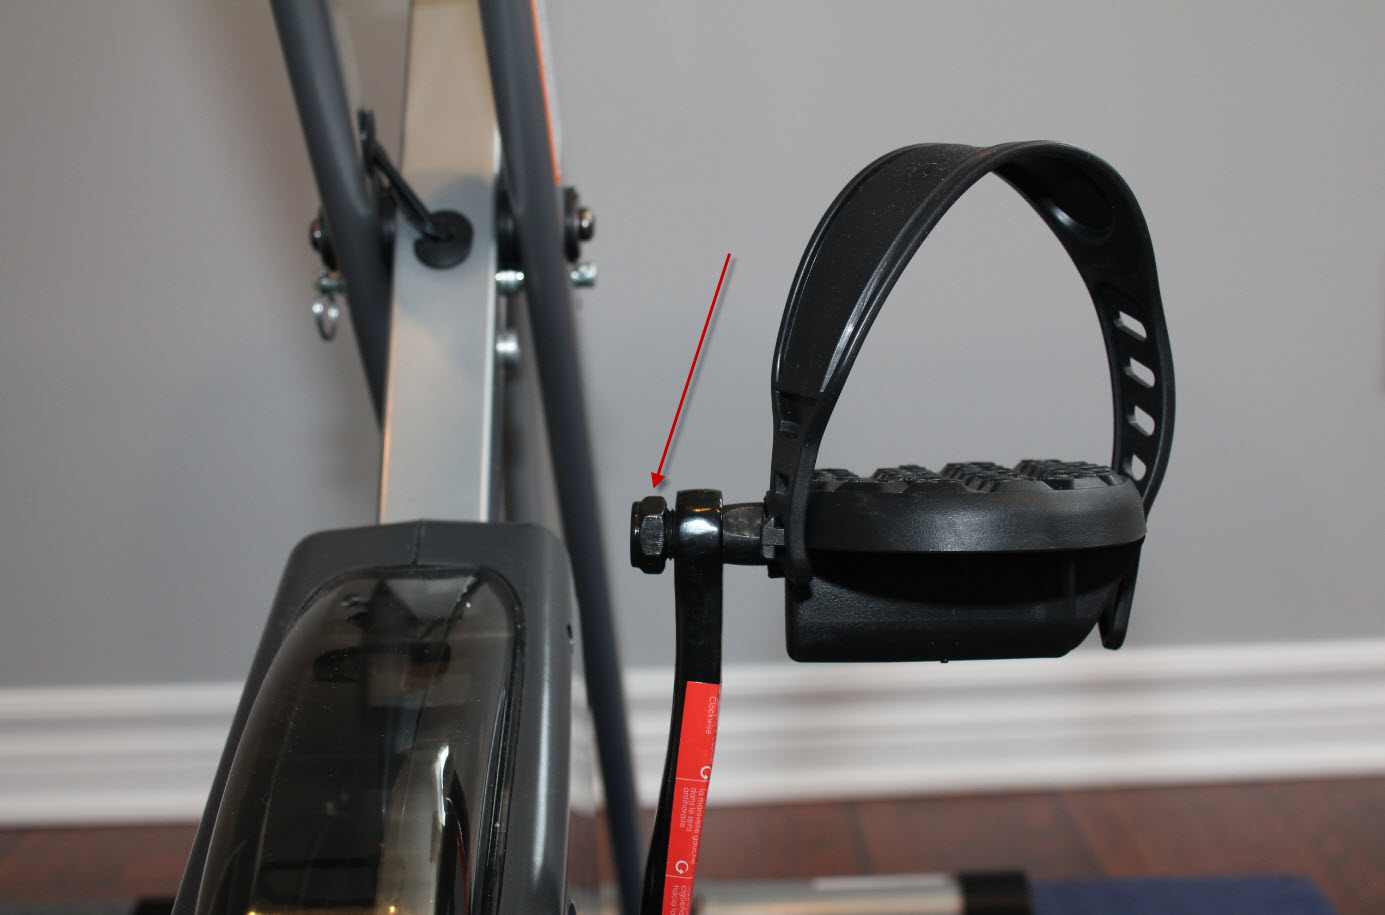 Pedal with strap and nut